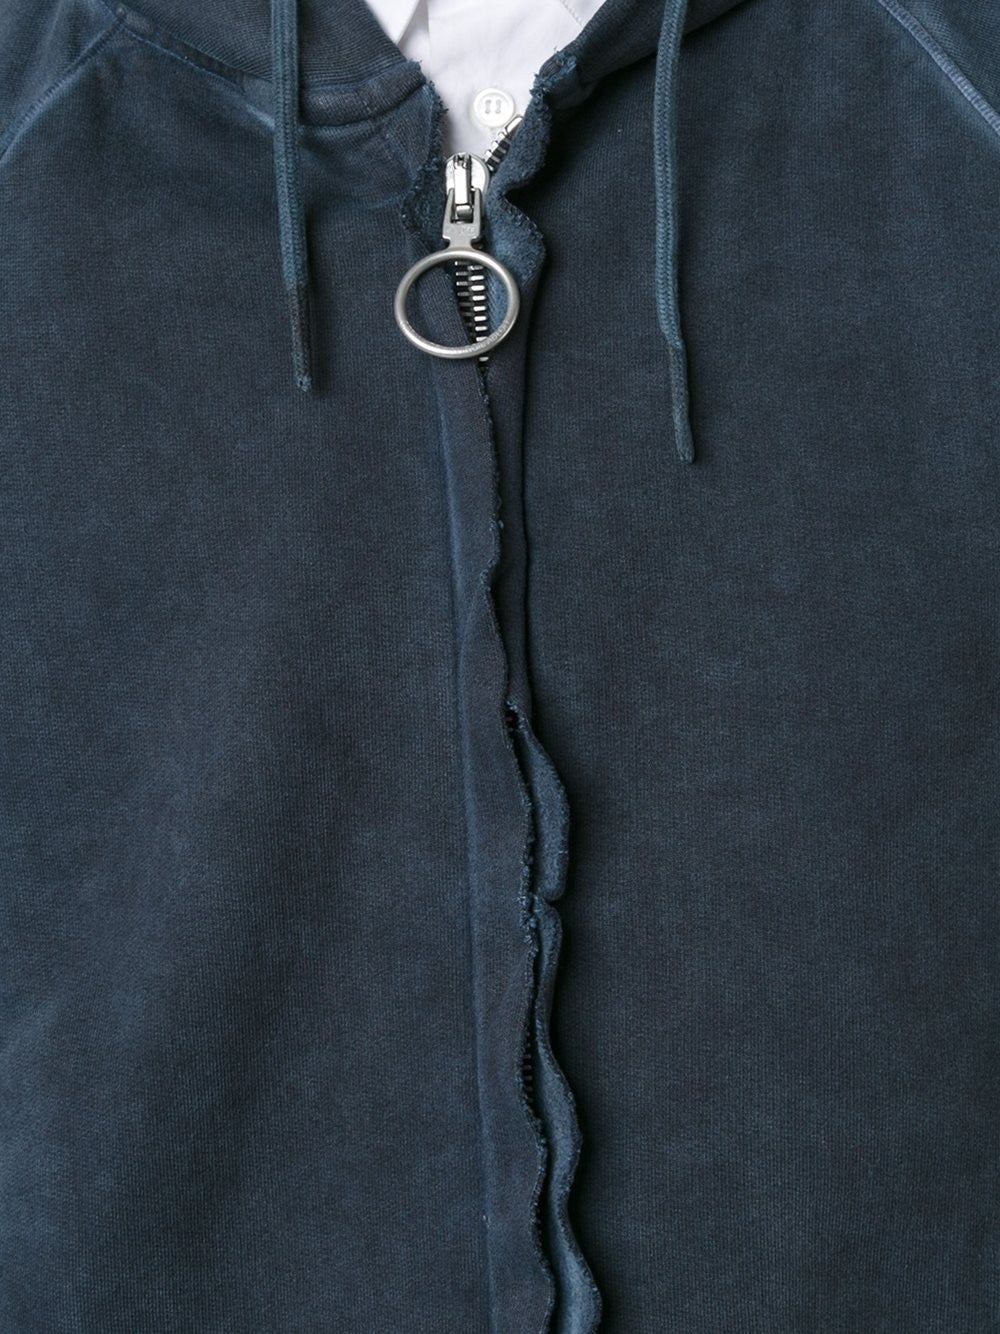 Zip-Up Cold Dyed Hoodie | OMBB-011F16-192023 RAW FLEECE